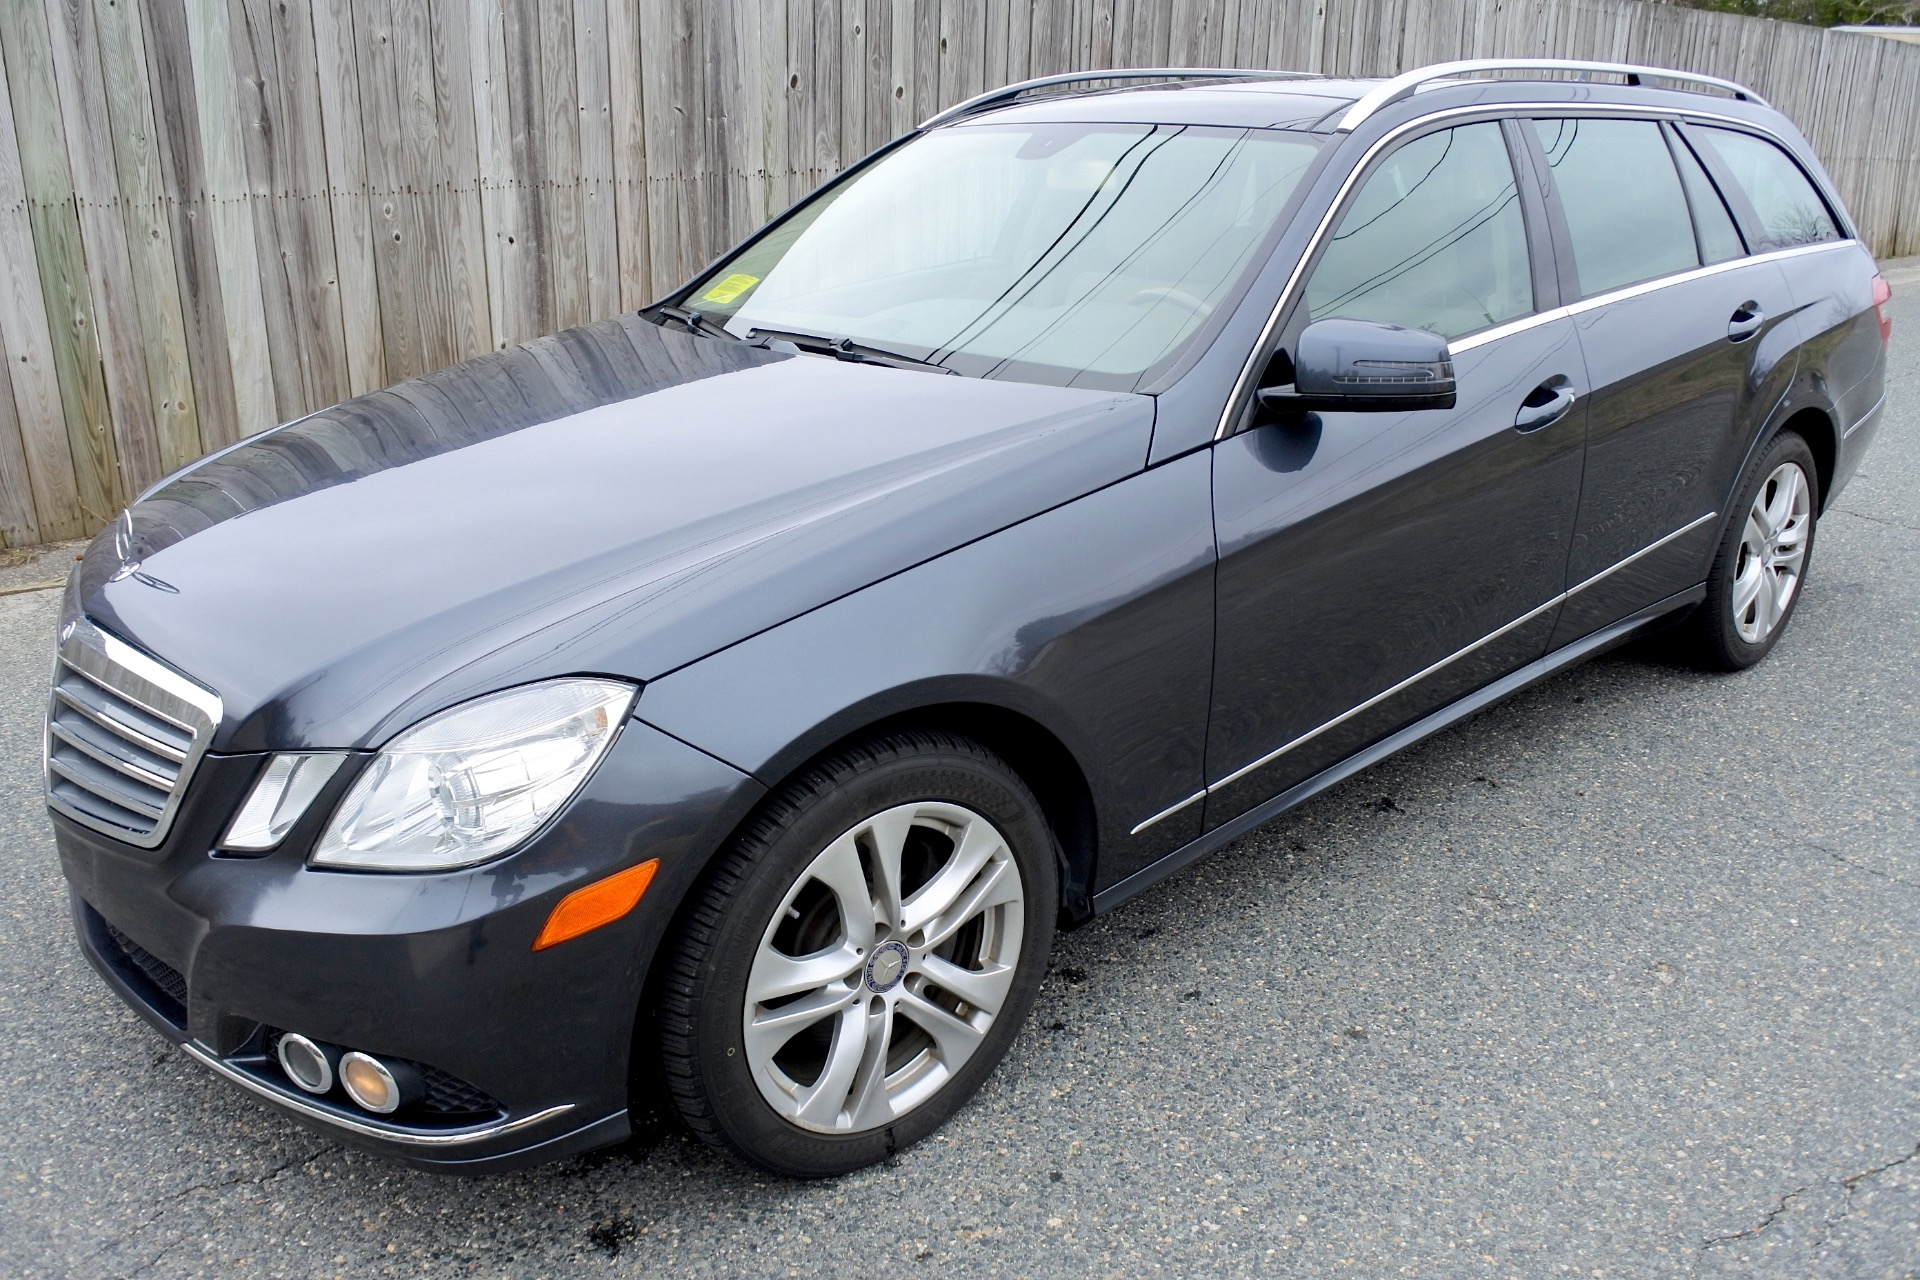 Used 2011 Mercedes-Benz E-Class 4dr Wgn E350 Luxury 4MATIC Used 2011 Mercedes-Benz E-Class 4dr Wgn E350 Luxury 4MATIC for sale  at Metro West Motorcars LLC in Shrewsbury MA 1